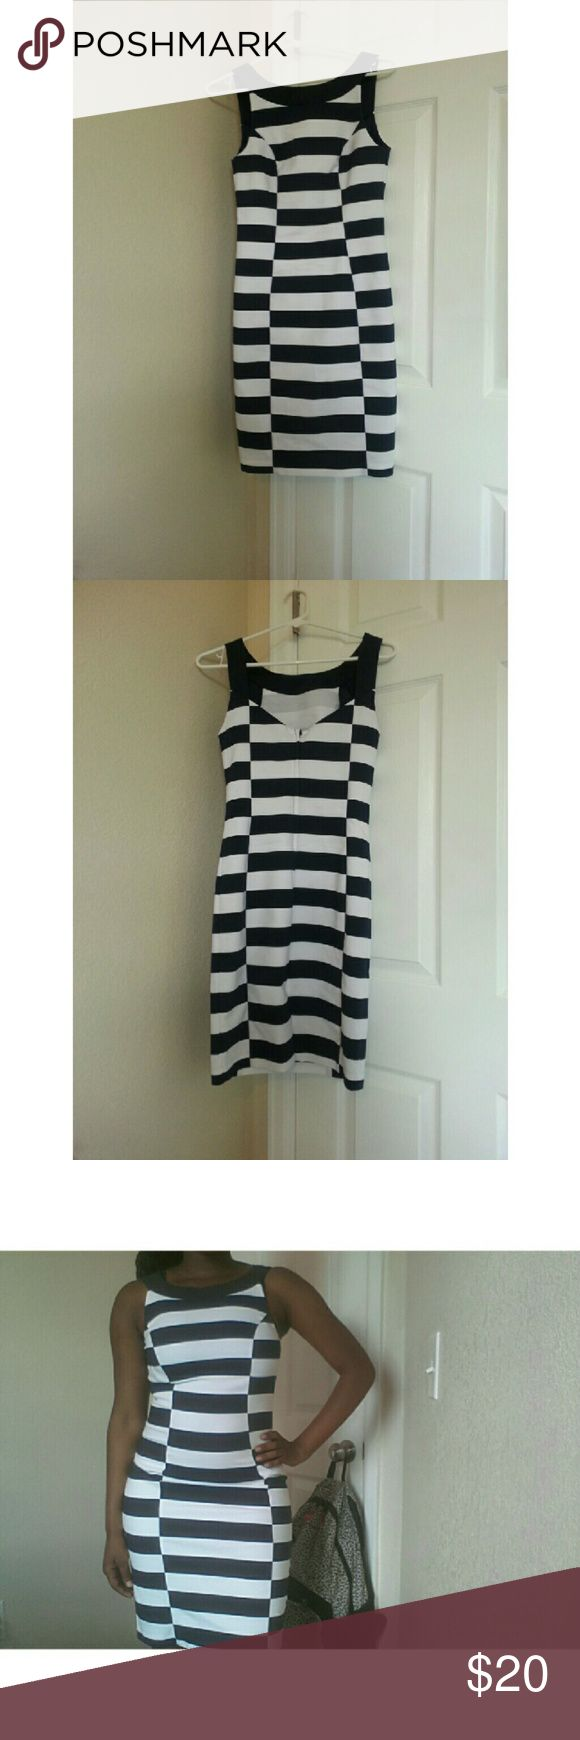 Bodycon Dress ♡ This is a cute bodycon dress from H&M. This Navy Blue & White stripped dress is perfect for any occasion! This dress is in great condition ! Feel free to ask any questions about this dress.  Price is firm. // NO TRADES // // Please don't advertise your closet. // H&M Dresses